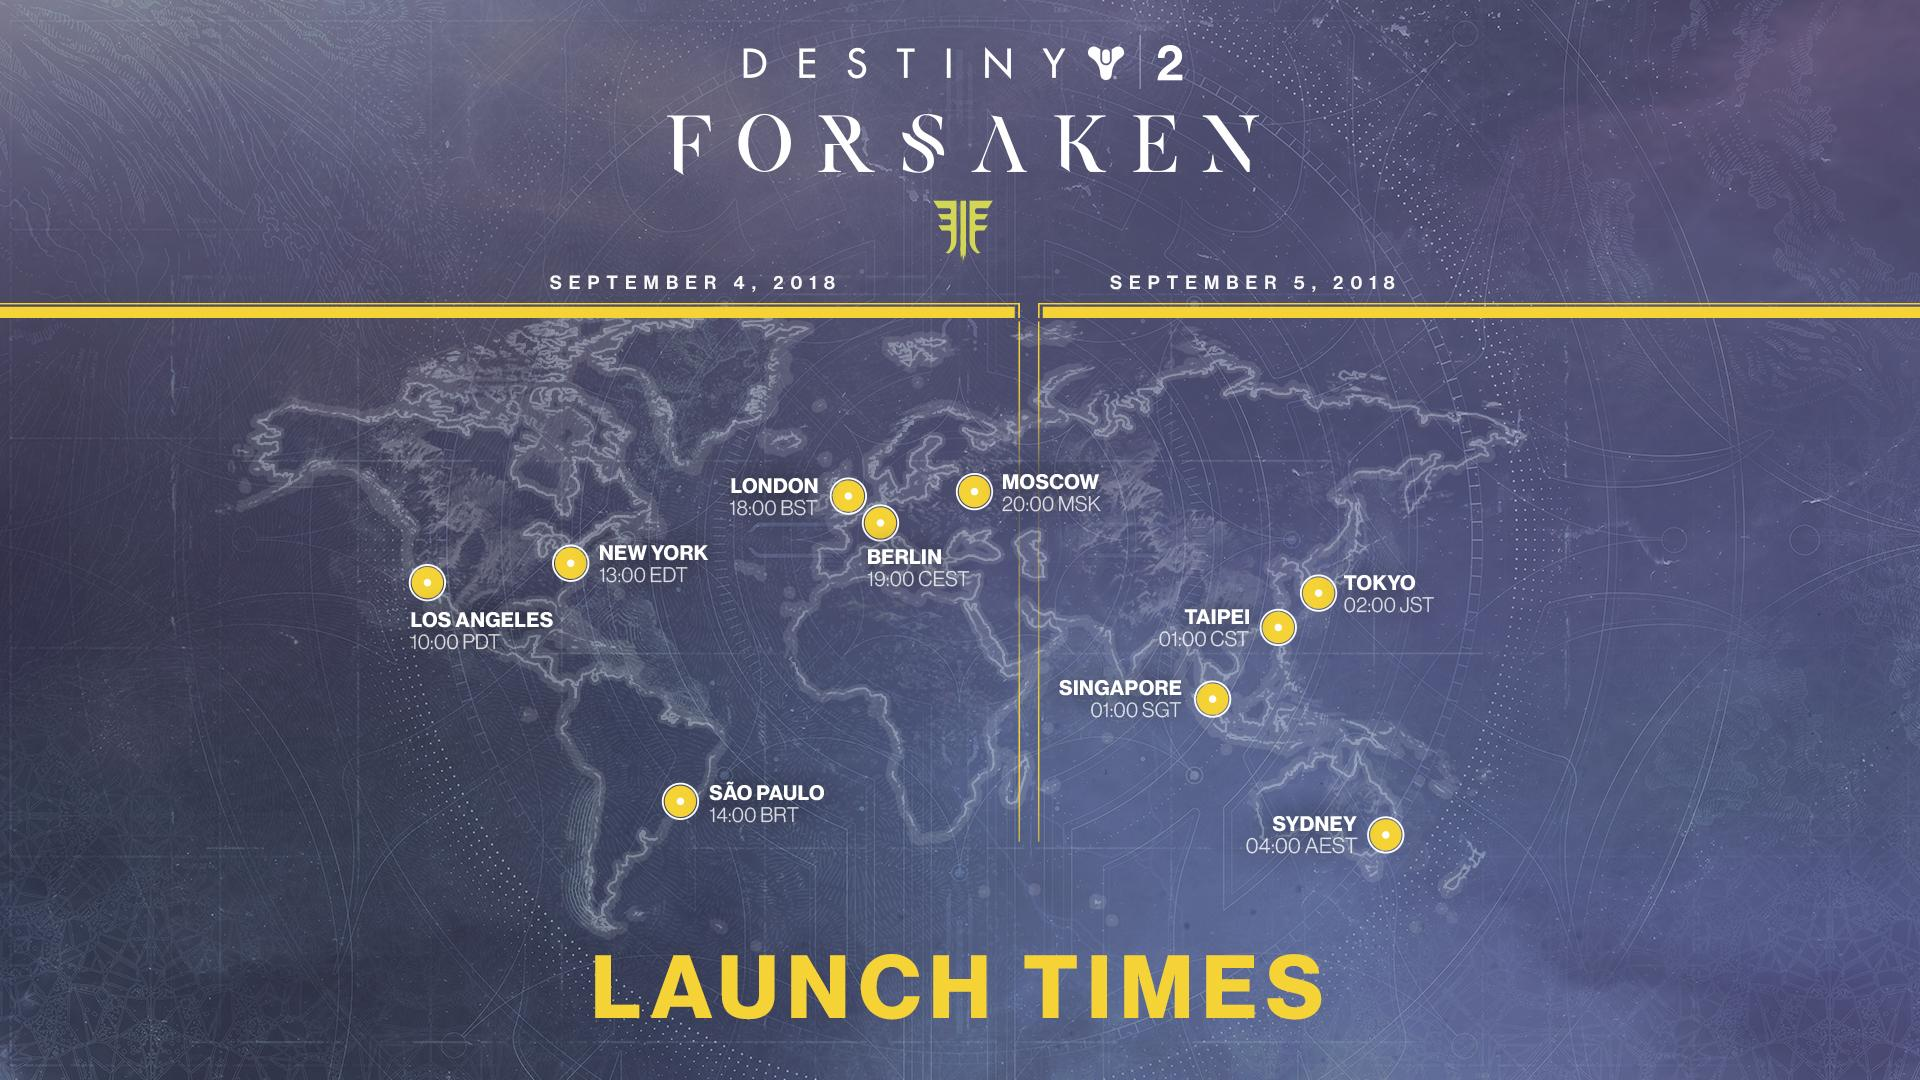 a5c139629c4 Countdown to Forsaken(End of Maintenance and Playable State)